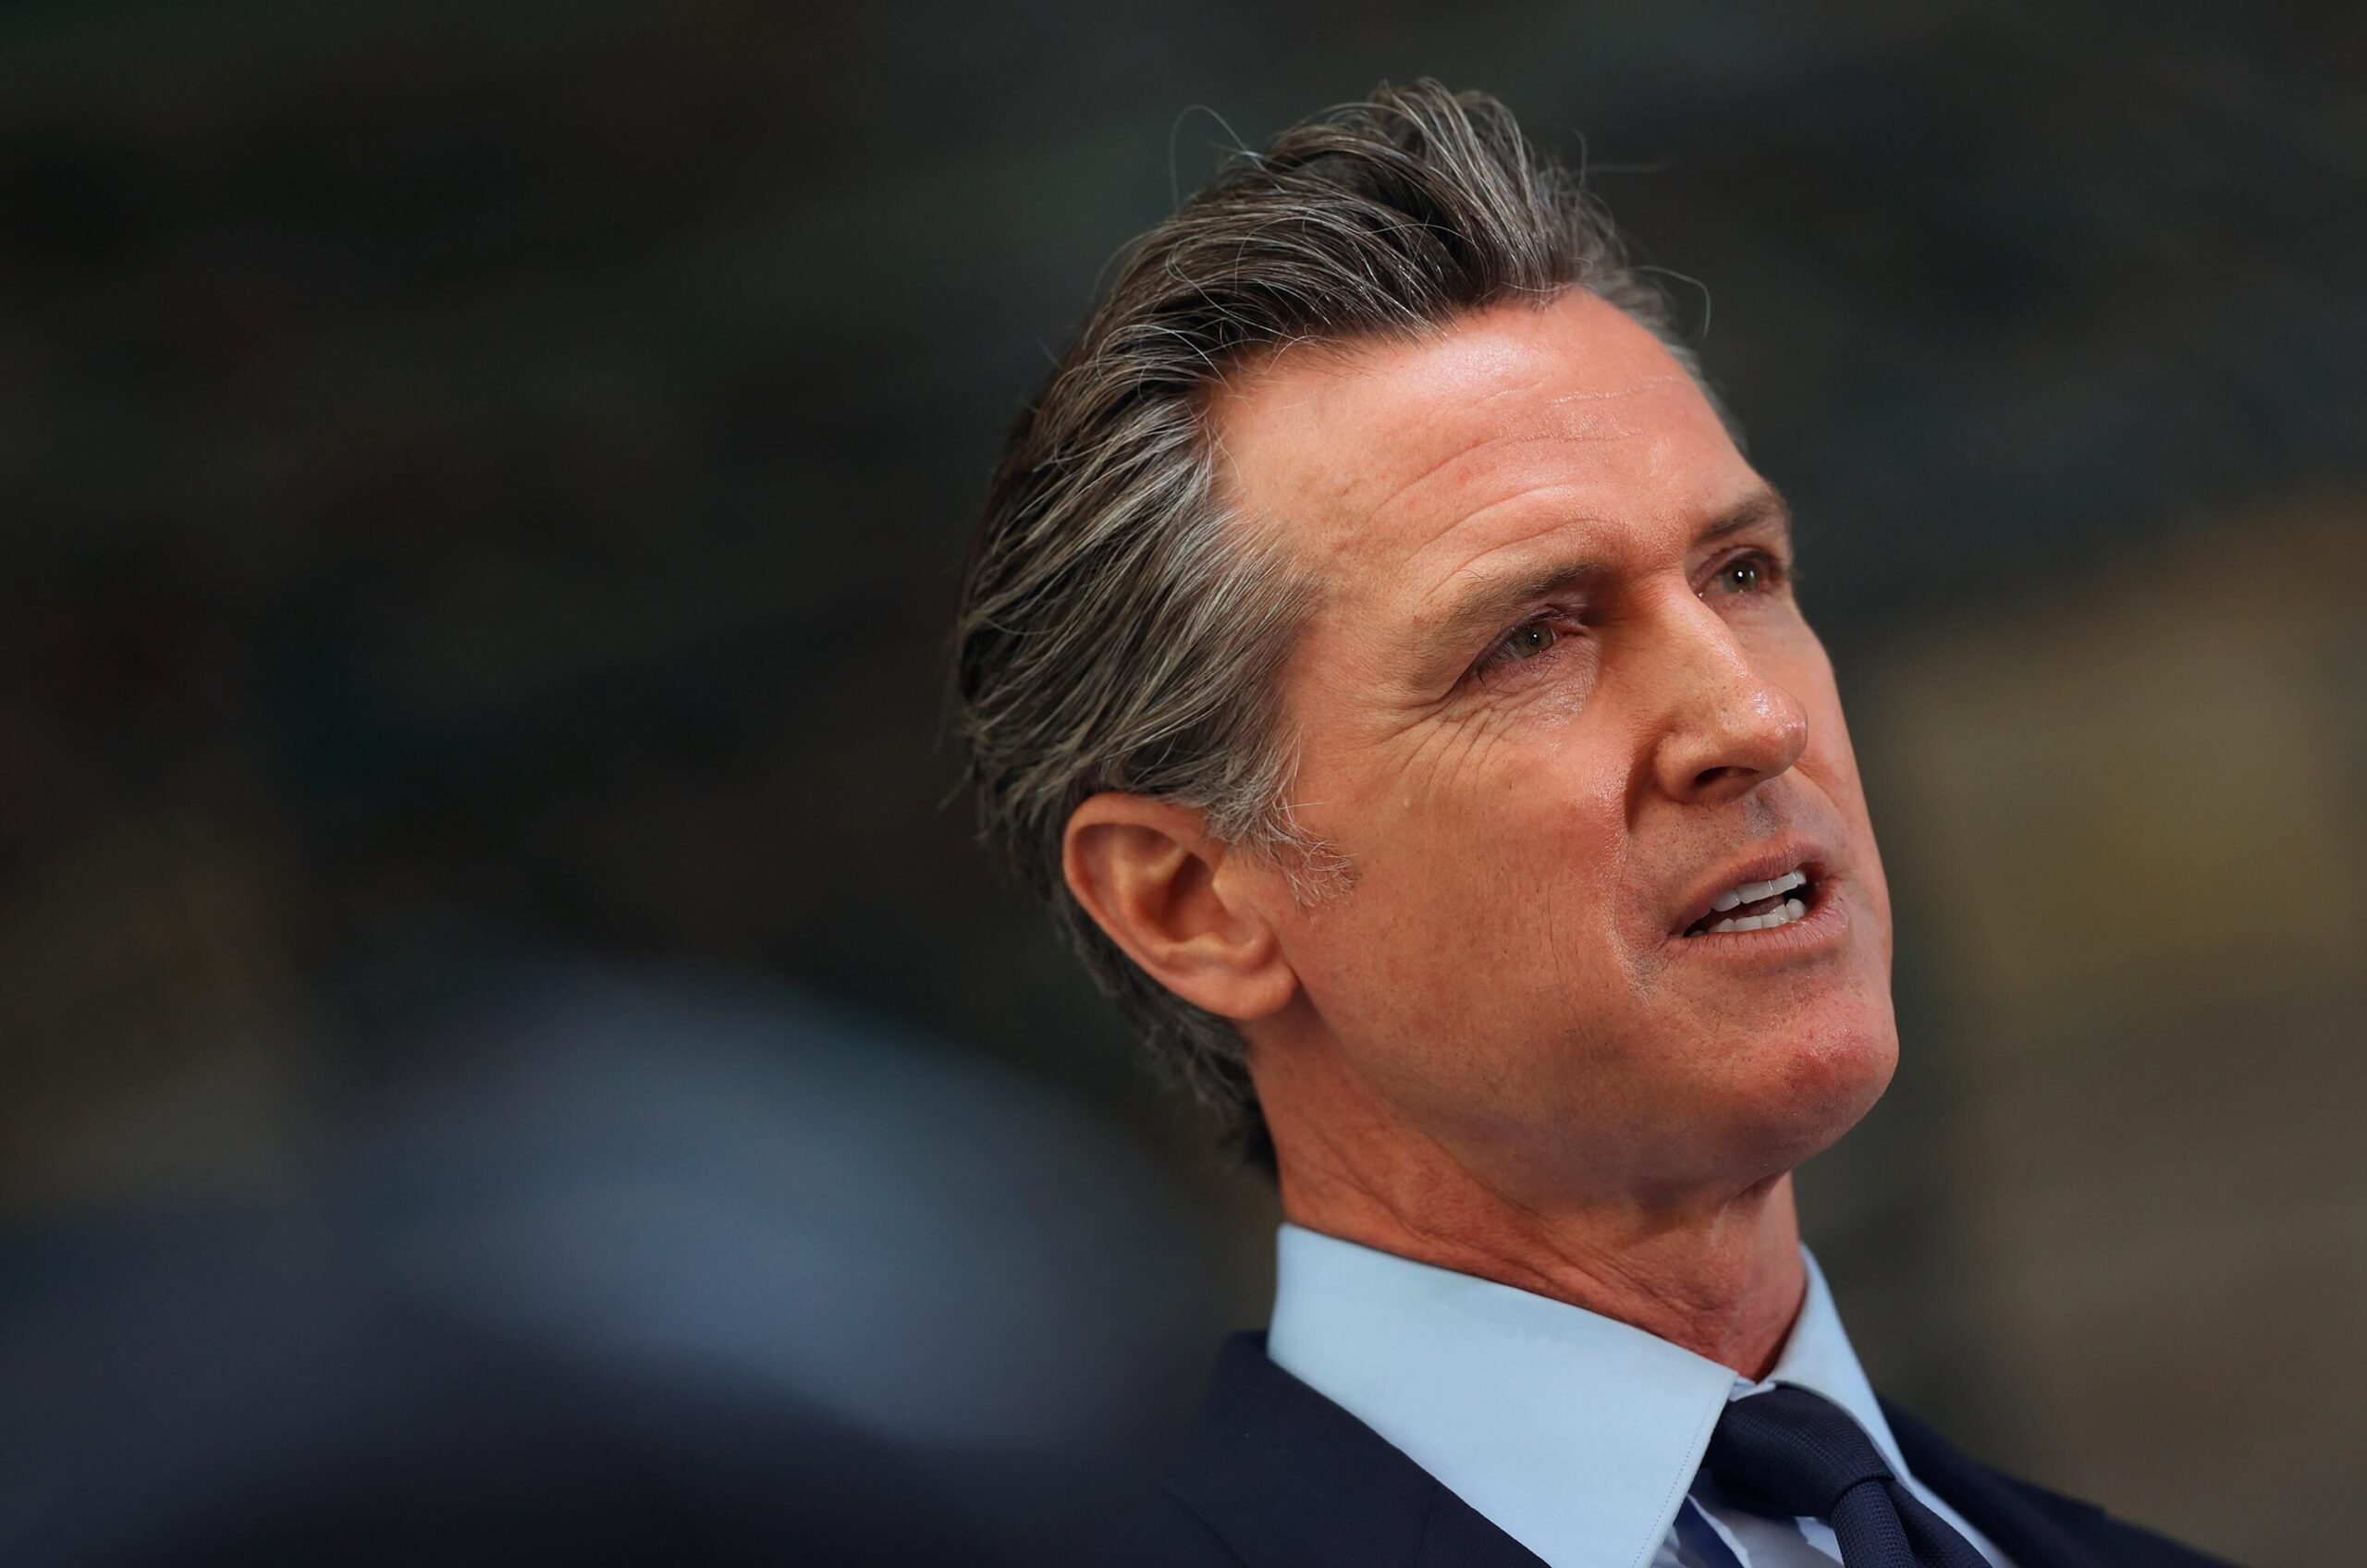 <i>Justin Sullivan/Getty Images</i><br/>California will require all state employees and health care workers to provide proof of vaccination status or get regular testing amid a surge of cases from the highly contagious Delta variant